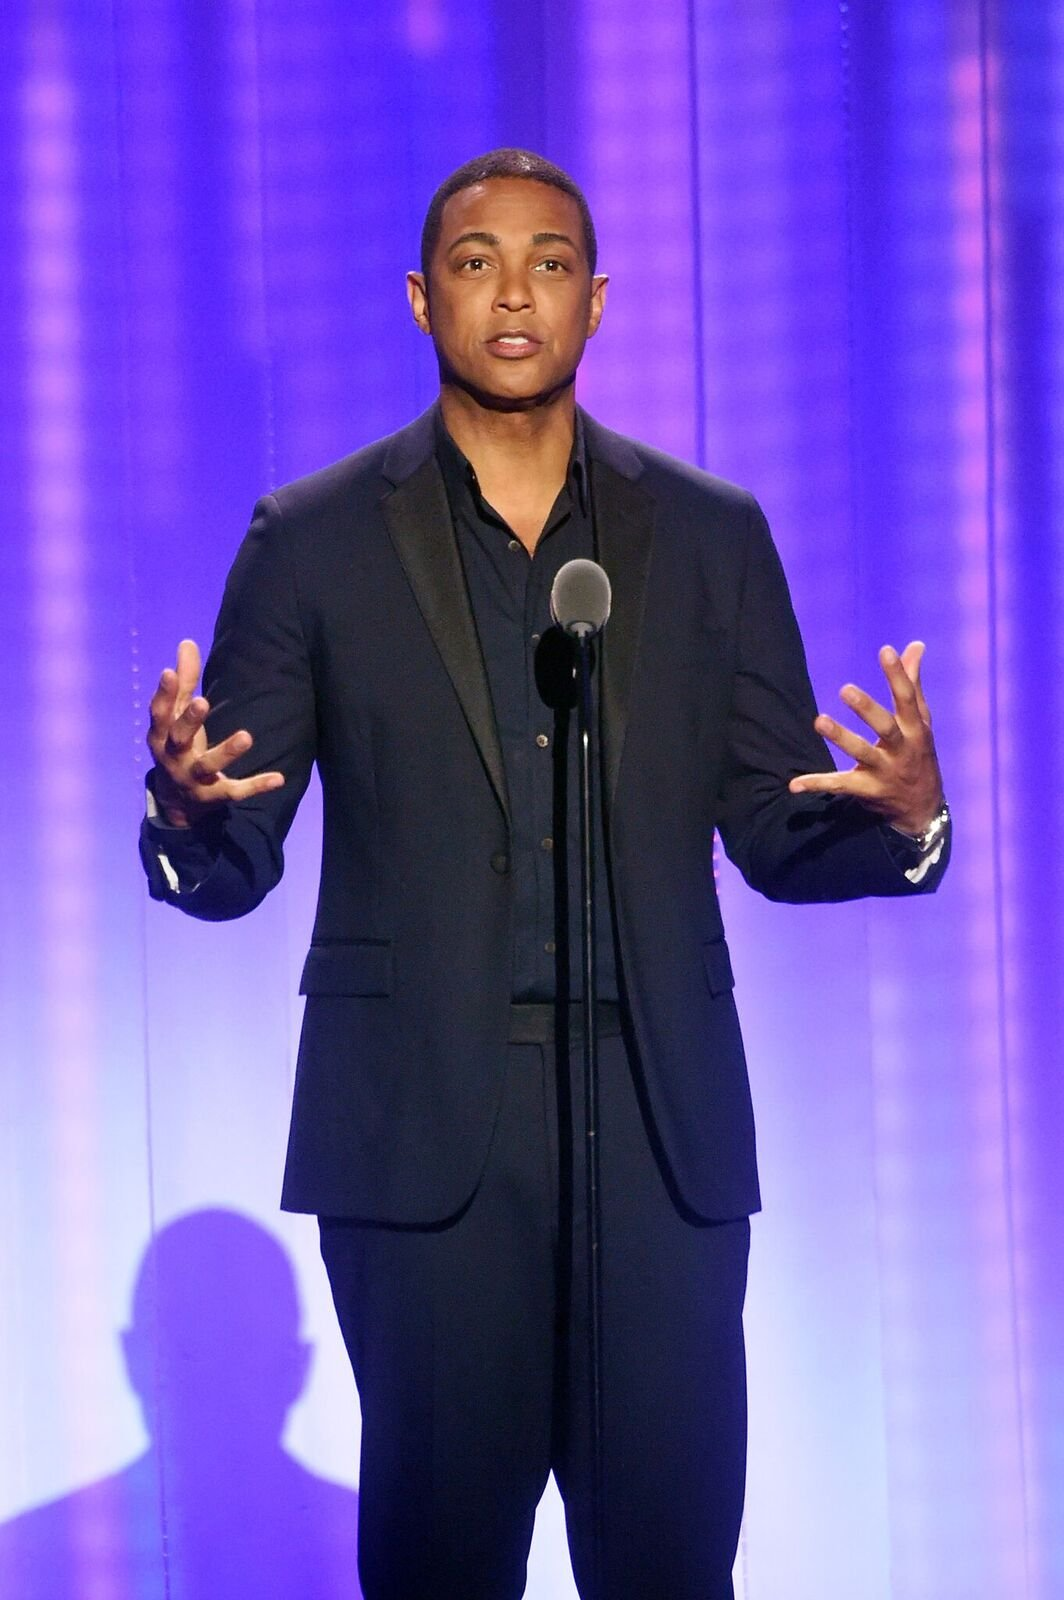 Don Lemon speaks onstage at the Logo's 2017 Trailblazer Honors event at Cathedral of St. John the Divine on June 22, 2017 | Photo: Getty Images